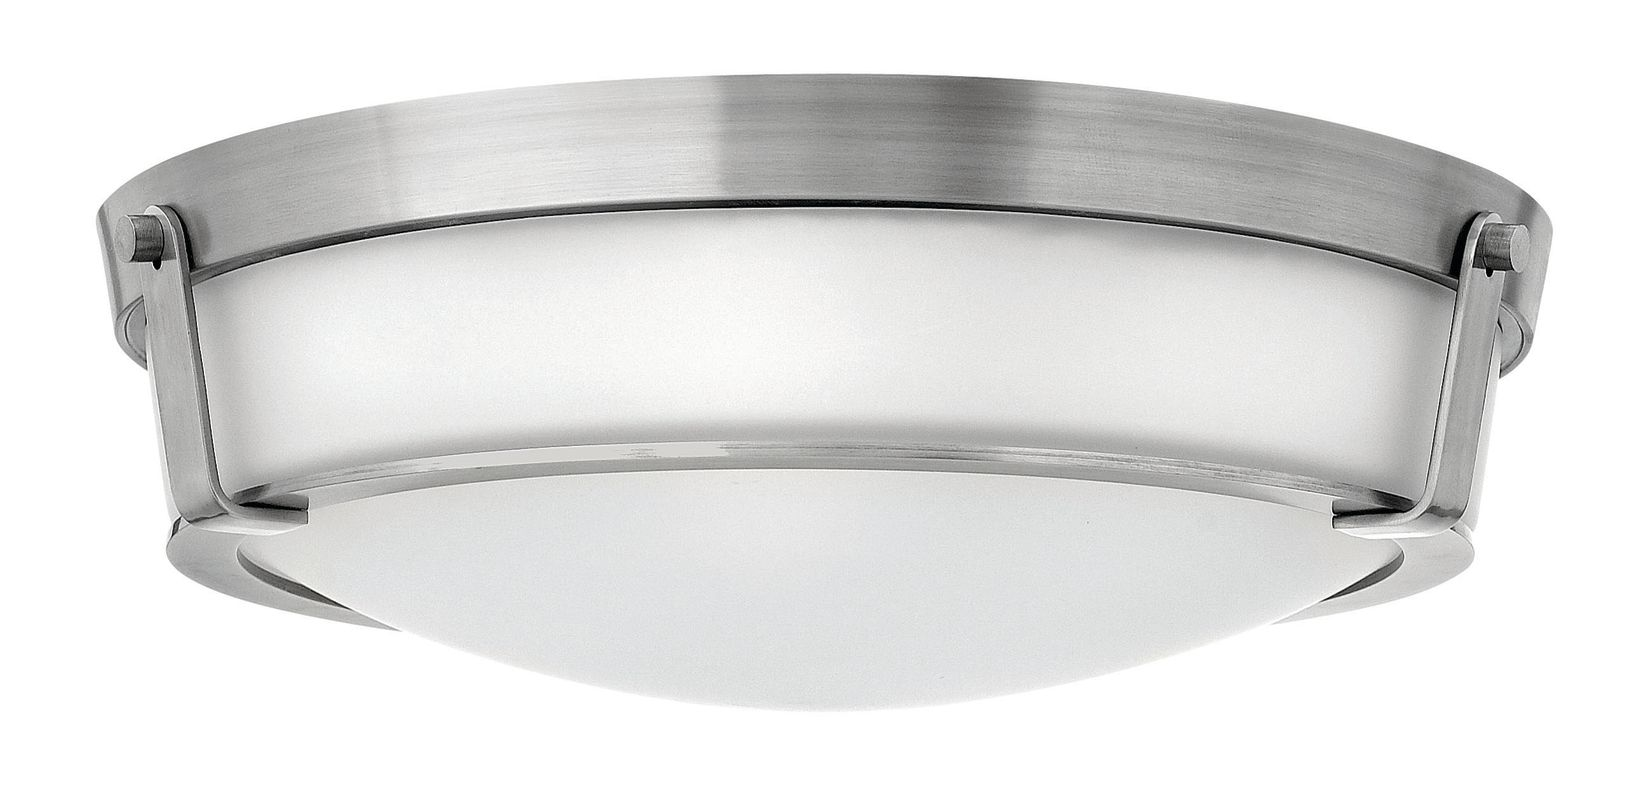 "Hinkley Lighting 3226-LED 1 Light LED Flush Mount Ceiling Fixture from Sale $749.00 ITEM#: 2635215 MODEL# :3226AN-LED UPC#: 640665322637 Single Light LED Flush Mount Ceiling Fixture from the Hathaway Collection Features: Etched glass dome shade included with the Antique Nickel finish Etched Amber glass dome shade Included with the Olde Bronze finish White glass dome shade included with the Olde Bronze / White finish Etched glass shades offer creative patterns and designs Made of steel Designed to cast light in a downward direction Energy efficient Suitable for dry locations Lamping Technology: LED - Light Emitting Diode: Highly efficient diodes produce little heat and have an extremely long lifespan. Specifications: Bulb Included: Yes Bulb Type: LED Canopy Diameter: 20.5"" Height: 6.25"" (measured from ceiling to bottom most point of fixture) LED: Yes Location Rating: Dry Location Material: Steel Number of Bulbs: 1 Product Weight: 18 lbs Shade Height: 4.875"" Shade Width: 19"" Sloped Ceiling Compatible: No Title 24: No UL Rating: Dry Location Voltage: 120v Wattage: 48 Watts Per Bulb: 48 Width: 21.25"" (measured from furthest point left to furthest point right on fixture) Compliance: UL Listed - Indicates whether a product meets standards and compliance guidelines set by Underwriters Laboratories. This listing determines what types of rooms or environments a product can be used in safely. About Hinkley Lighting: Since 1922, Hinkley Lighting has been driven by a passion to blend design and function in creating quality products that enhance your life. Hinkley is continually recommended by interior and exterior designers, and is available to you through premier lighting showrooms across the country. They pride themselves in delivering superior customer service that is second to none. They know that you have goals when it comes to your home's décor, and they care about helping you achieve the final outcome you are looking for in every aspect. :"